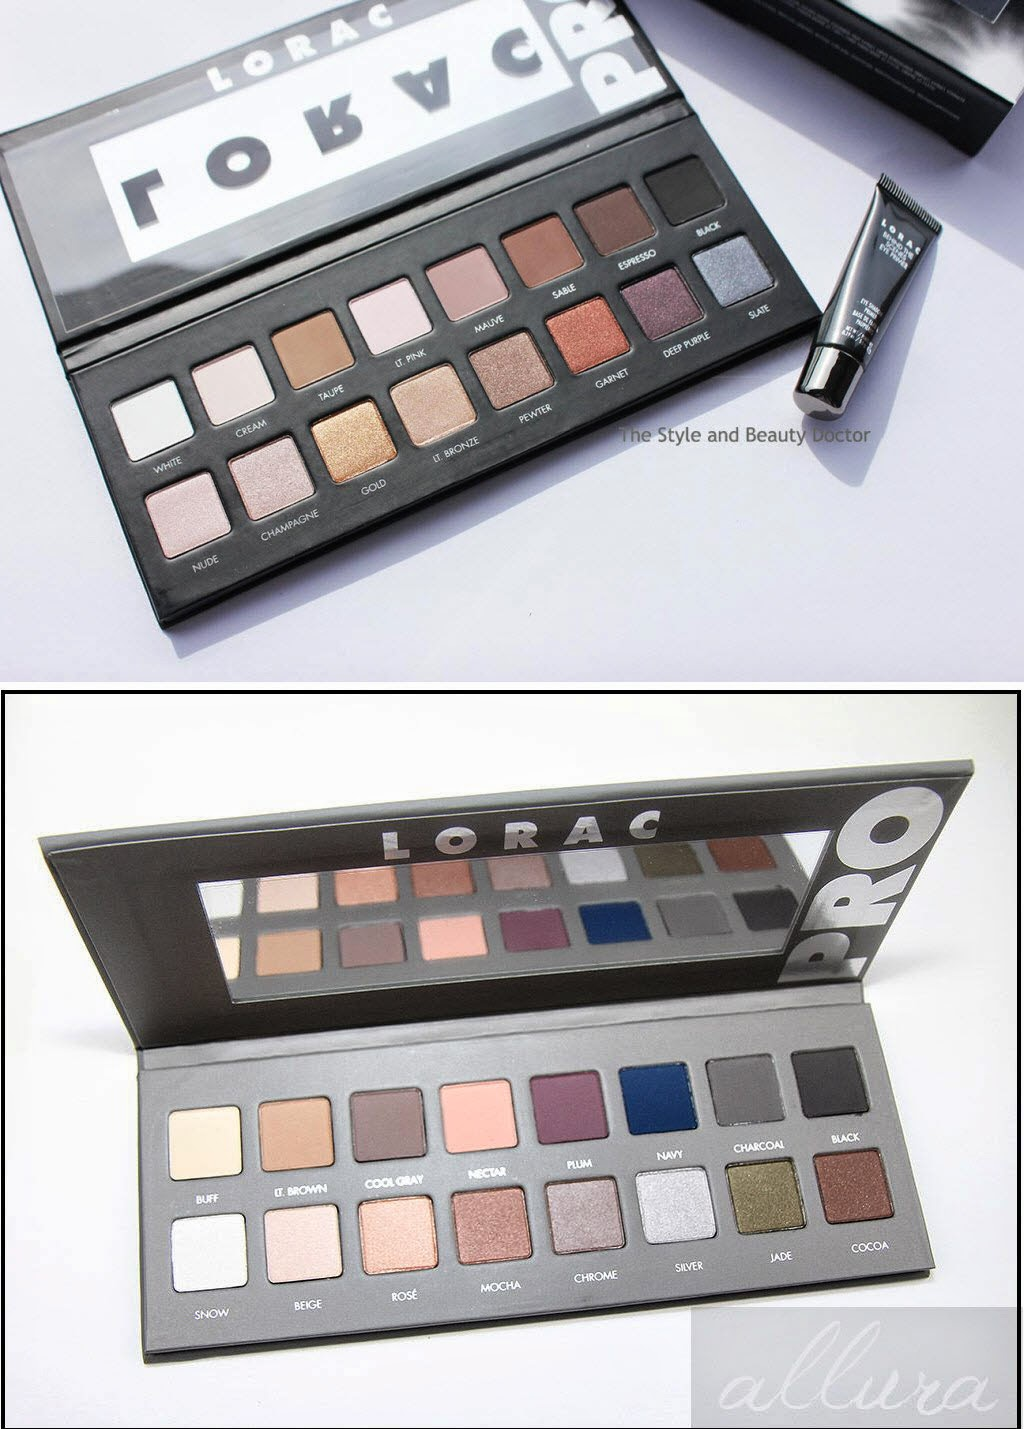 Lorac Pro To Go Professional Eye Collection Review: Beauty Marker: Current Makeup Cravings